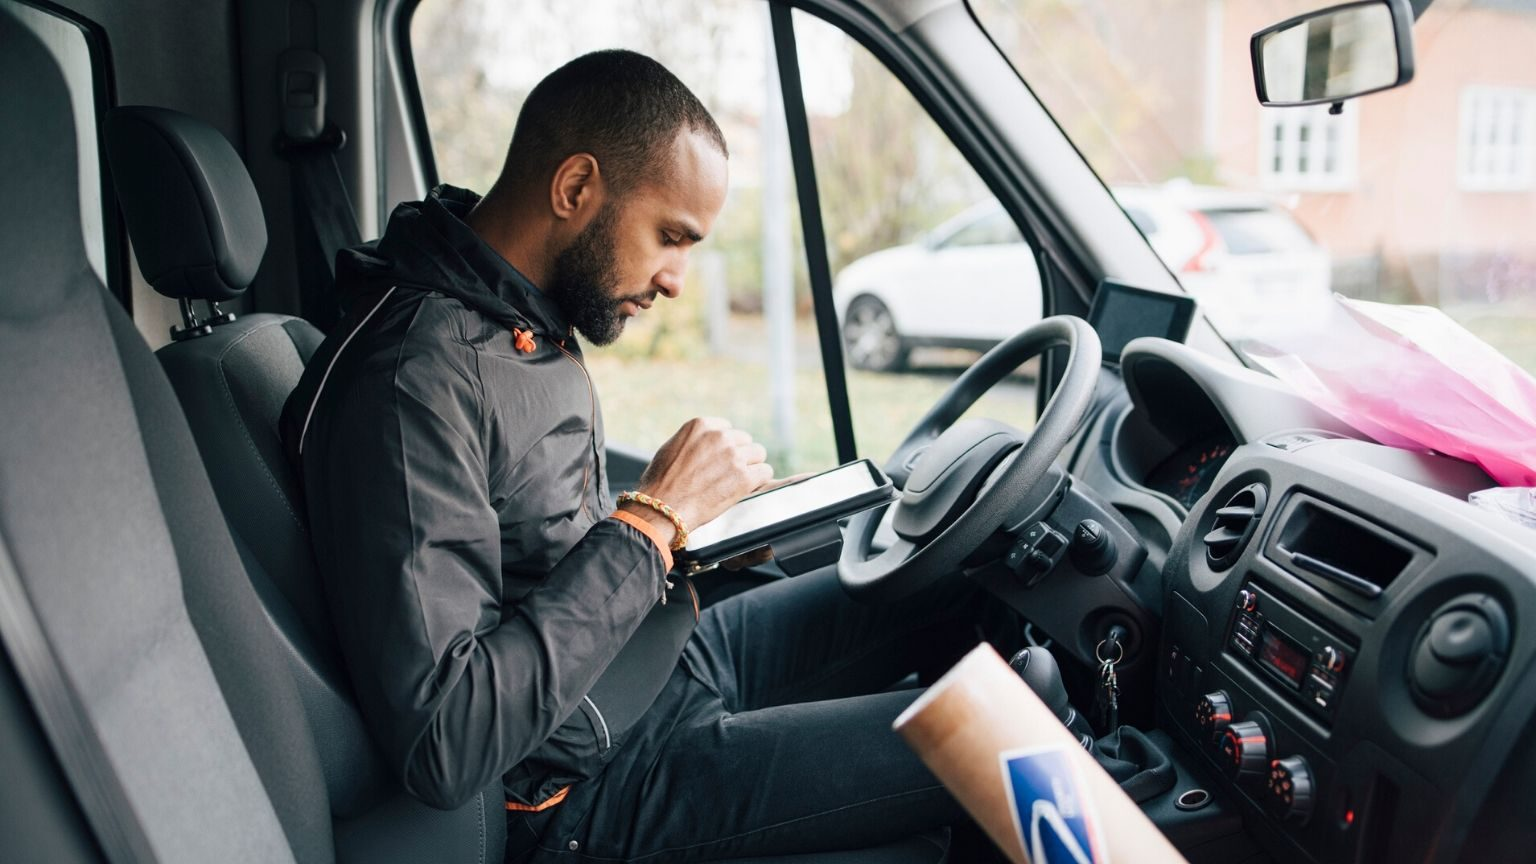 Man inside a commercial vehicle